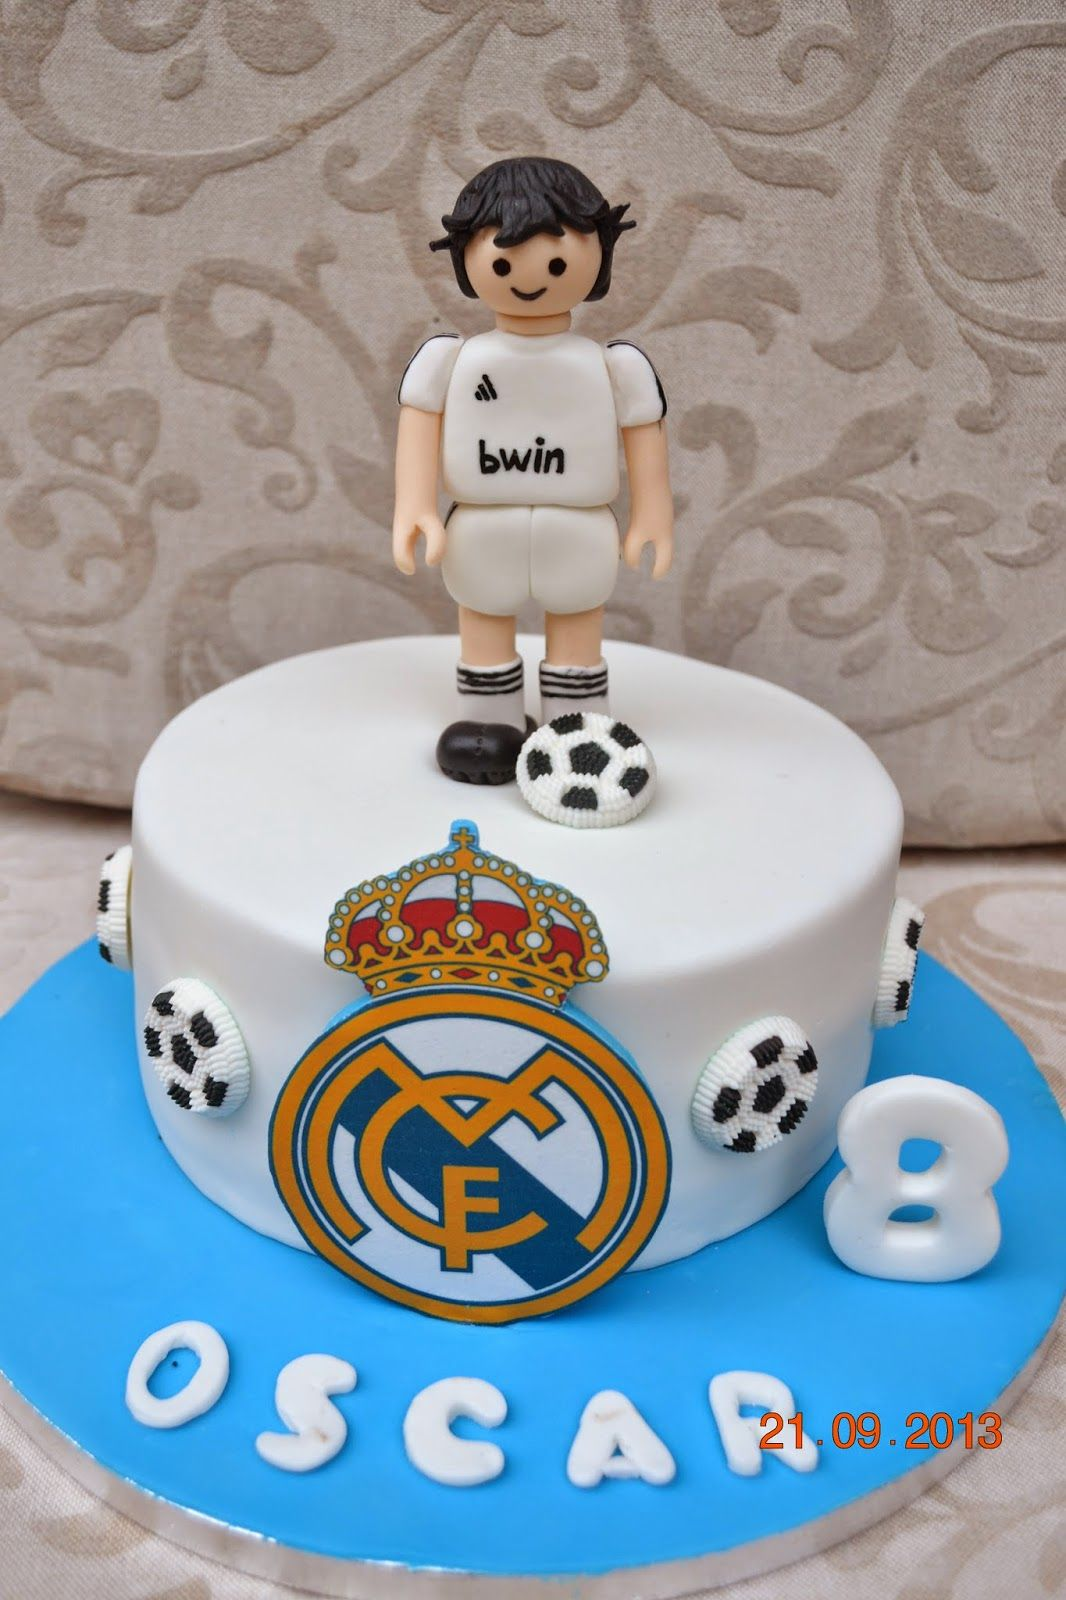 Dulcemiel cake reposteria creativa y tartas decoradas tarta playmobil real madrid - Decoracion madrid ...